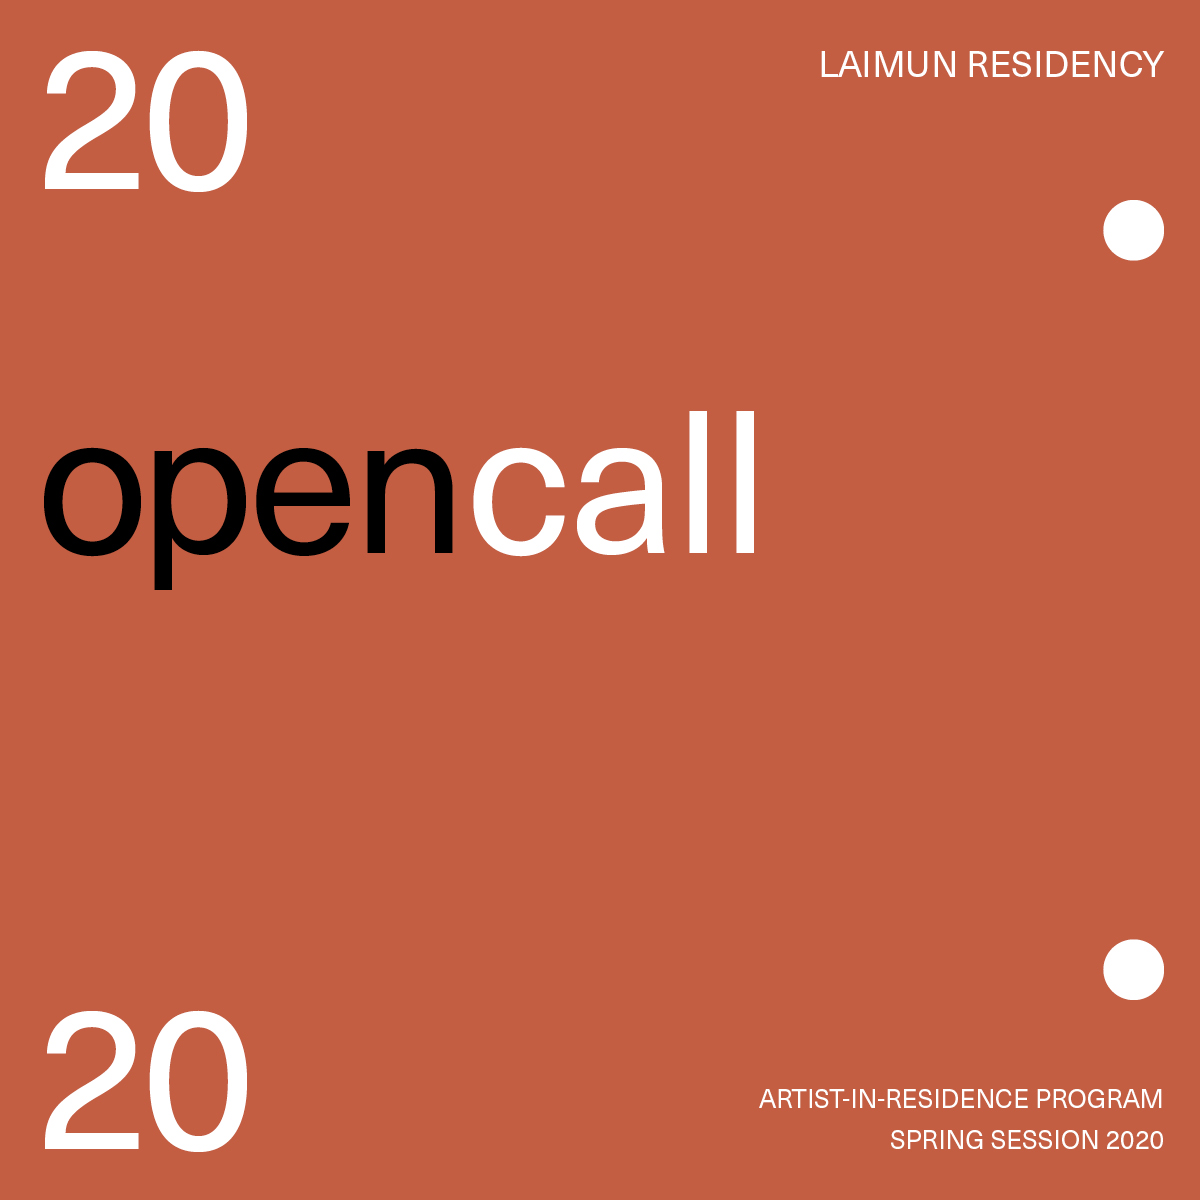 Laimun Residency Open Call 2020